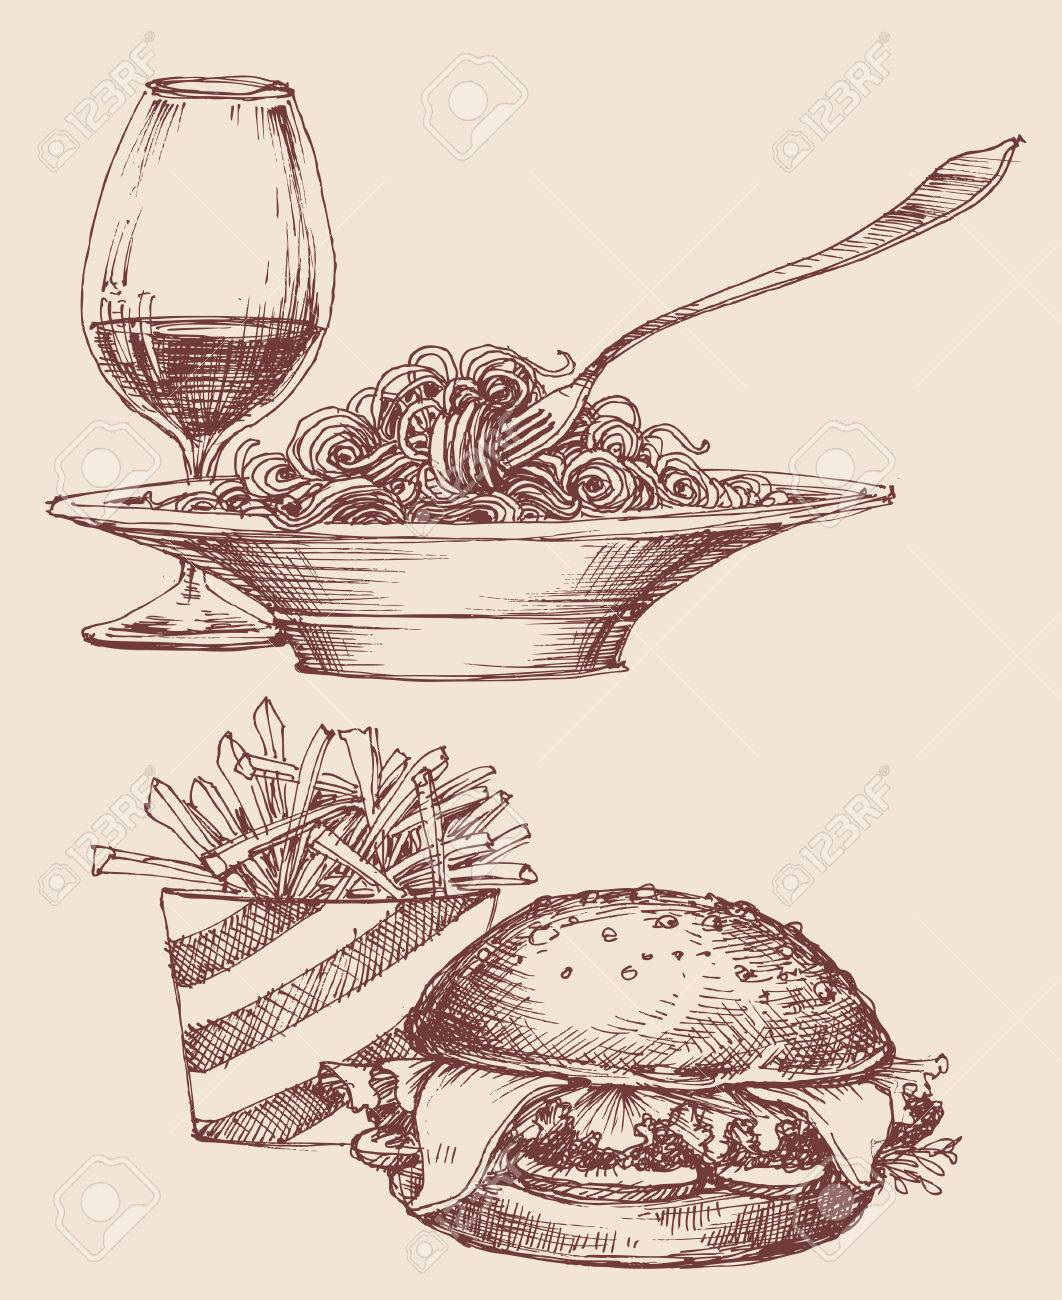 Food vector, fast food burger and fries, pasta and wine - 58650019